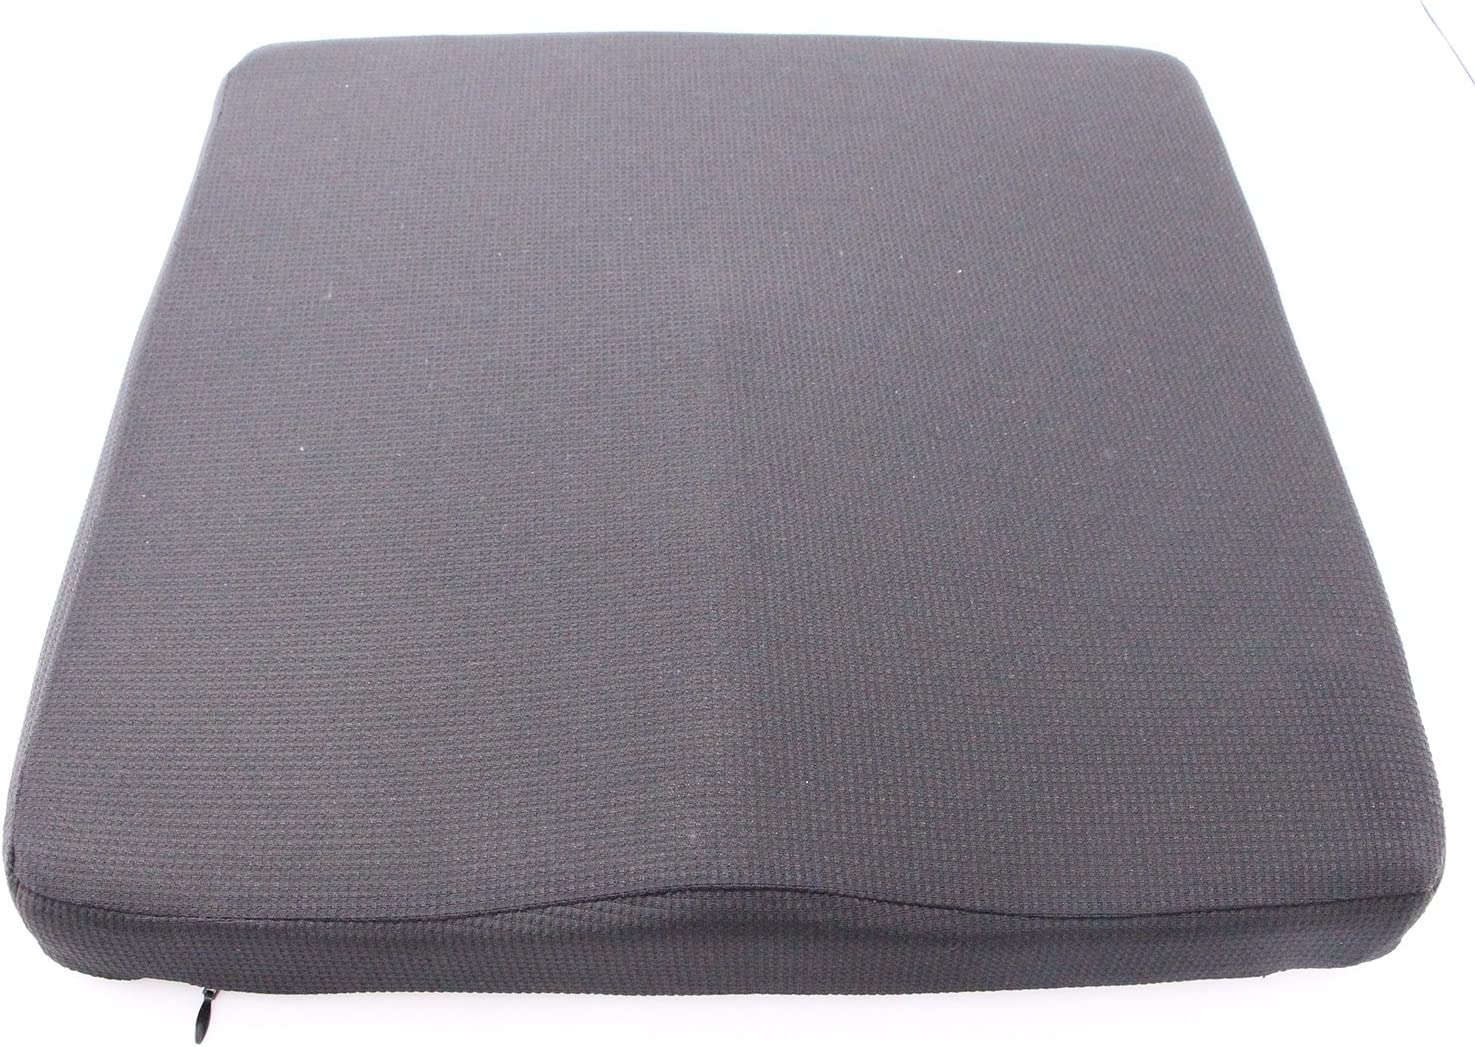 Coccyx and Back Pain Cushion,for Office Chair,Wheelchair and More,Beige TooCust Car Memory Foam Heightening Seat Cushion,Tailbone